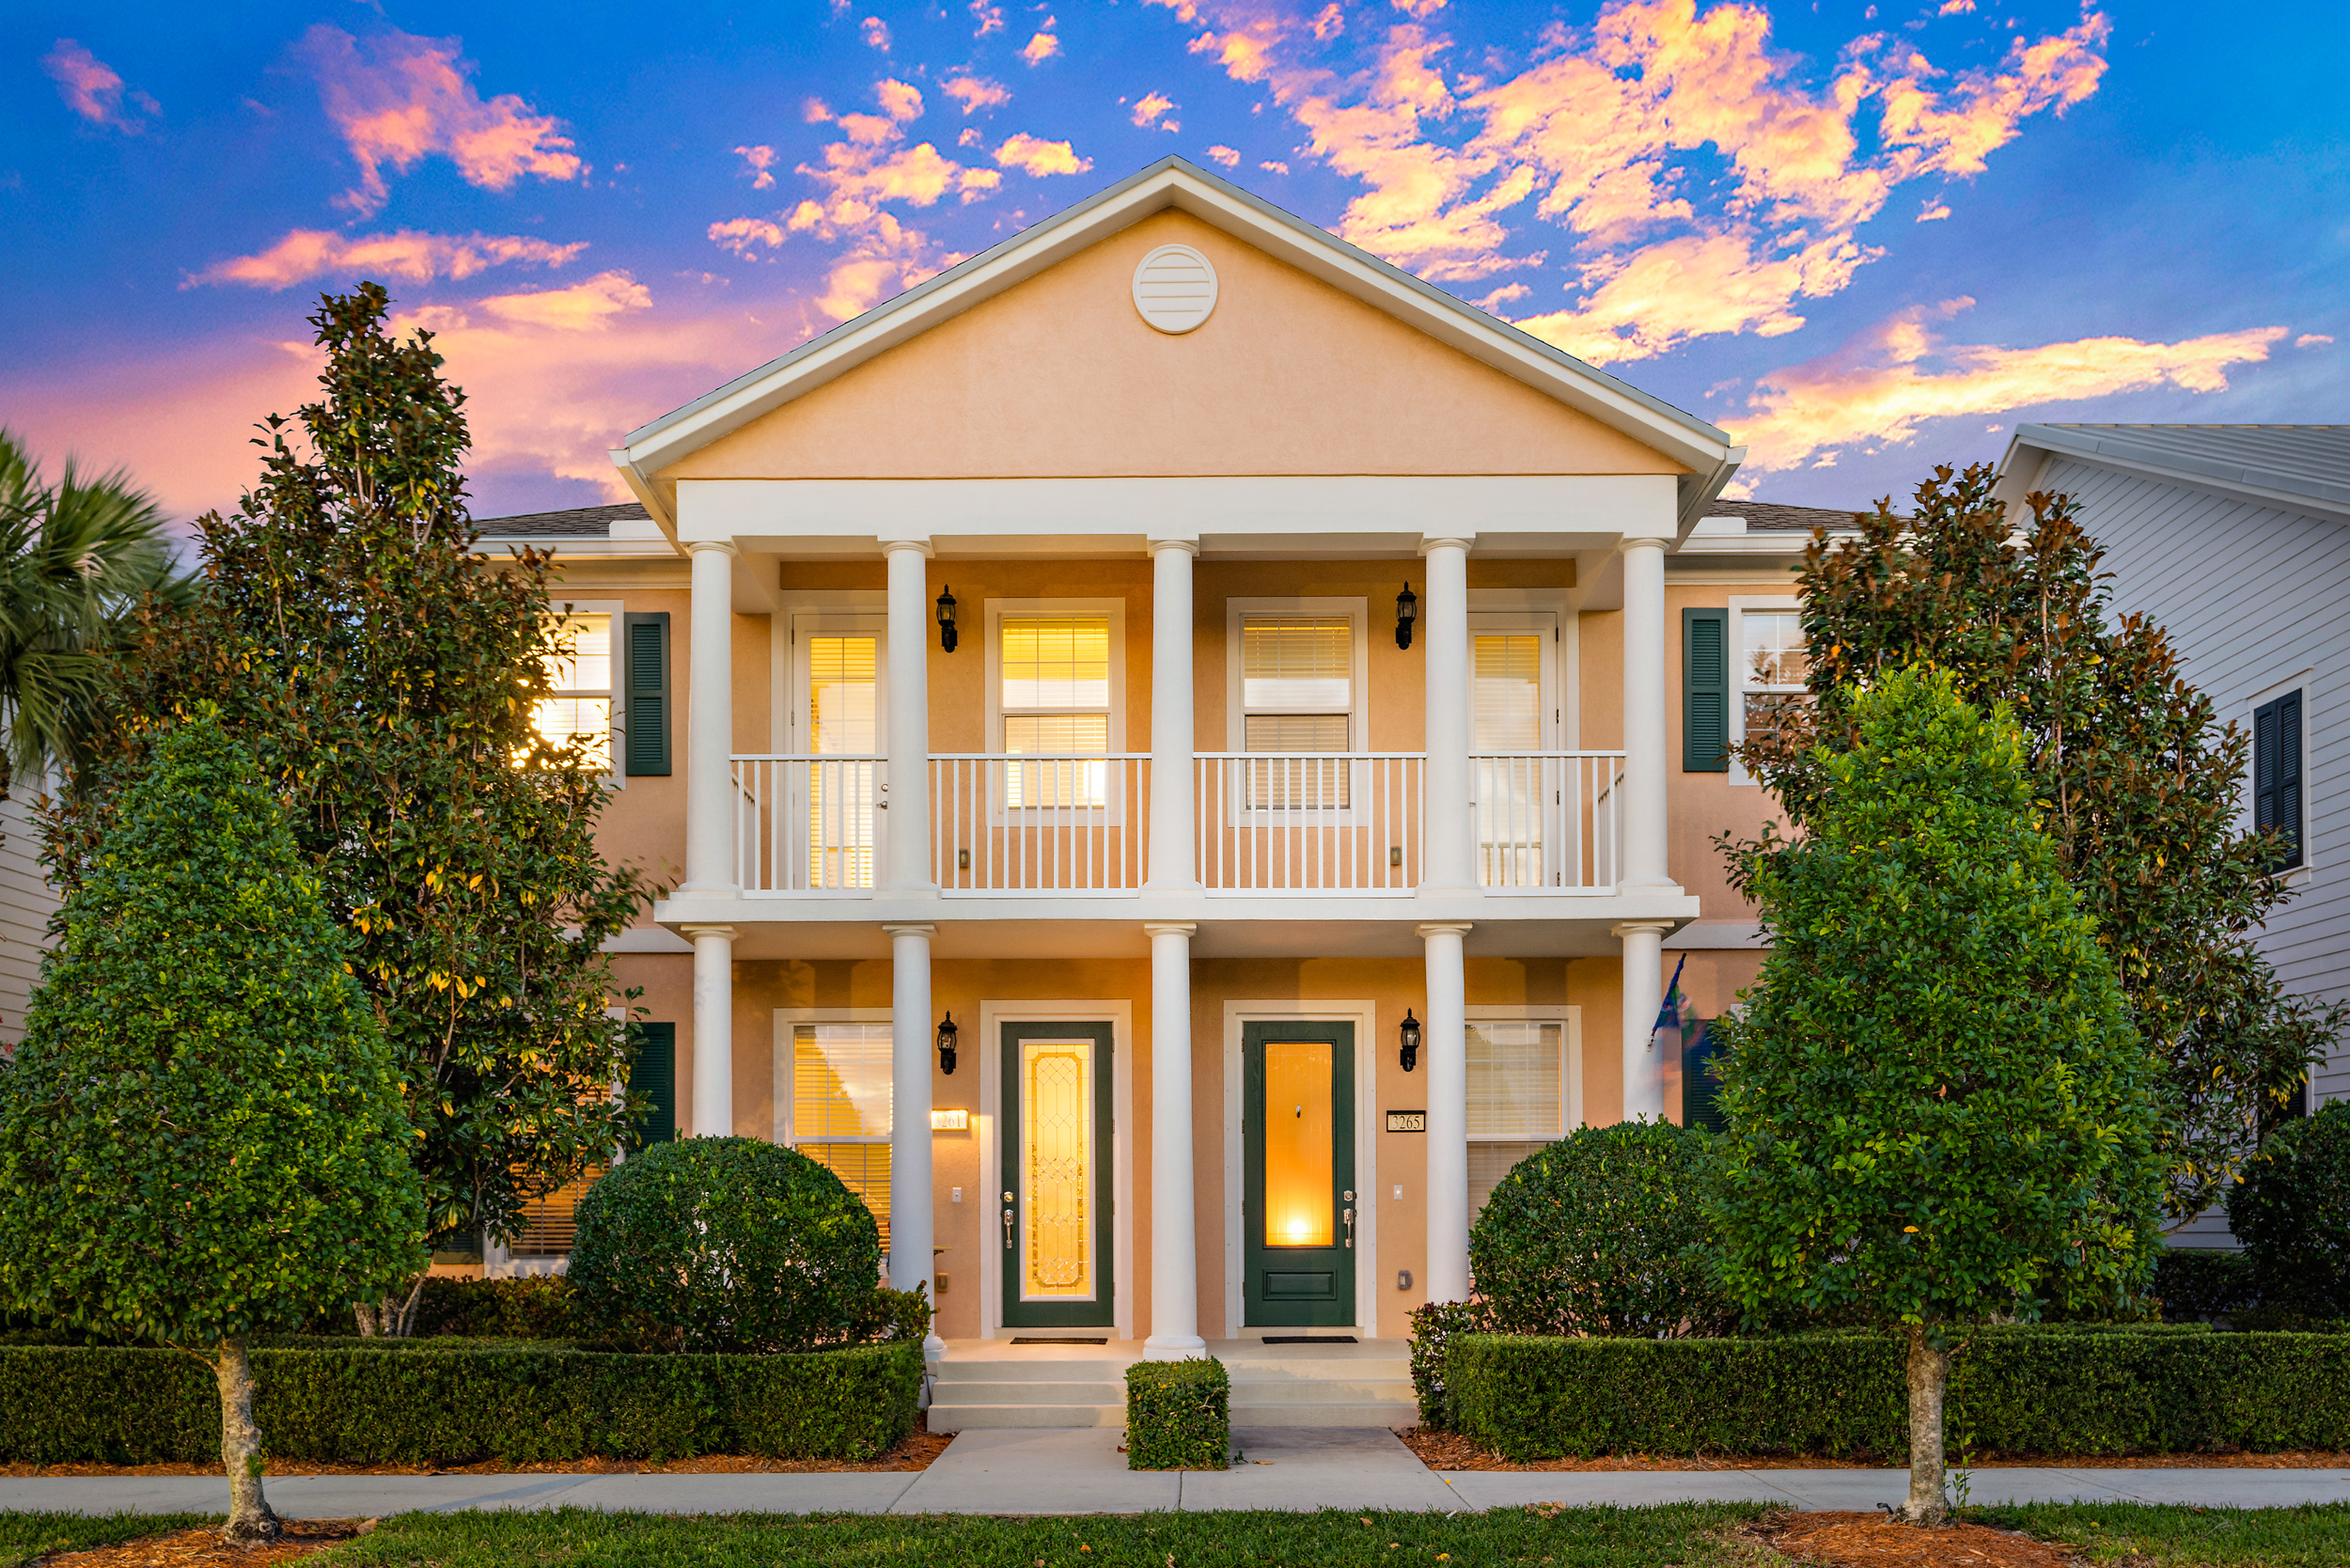 3261 Duncombe Drive Townhomes in Jupiter, Florida